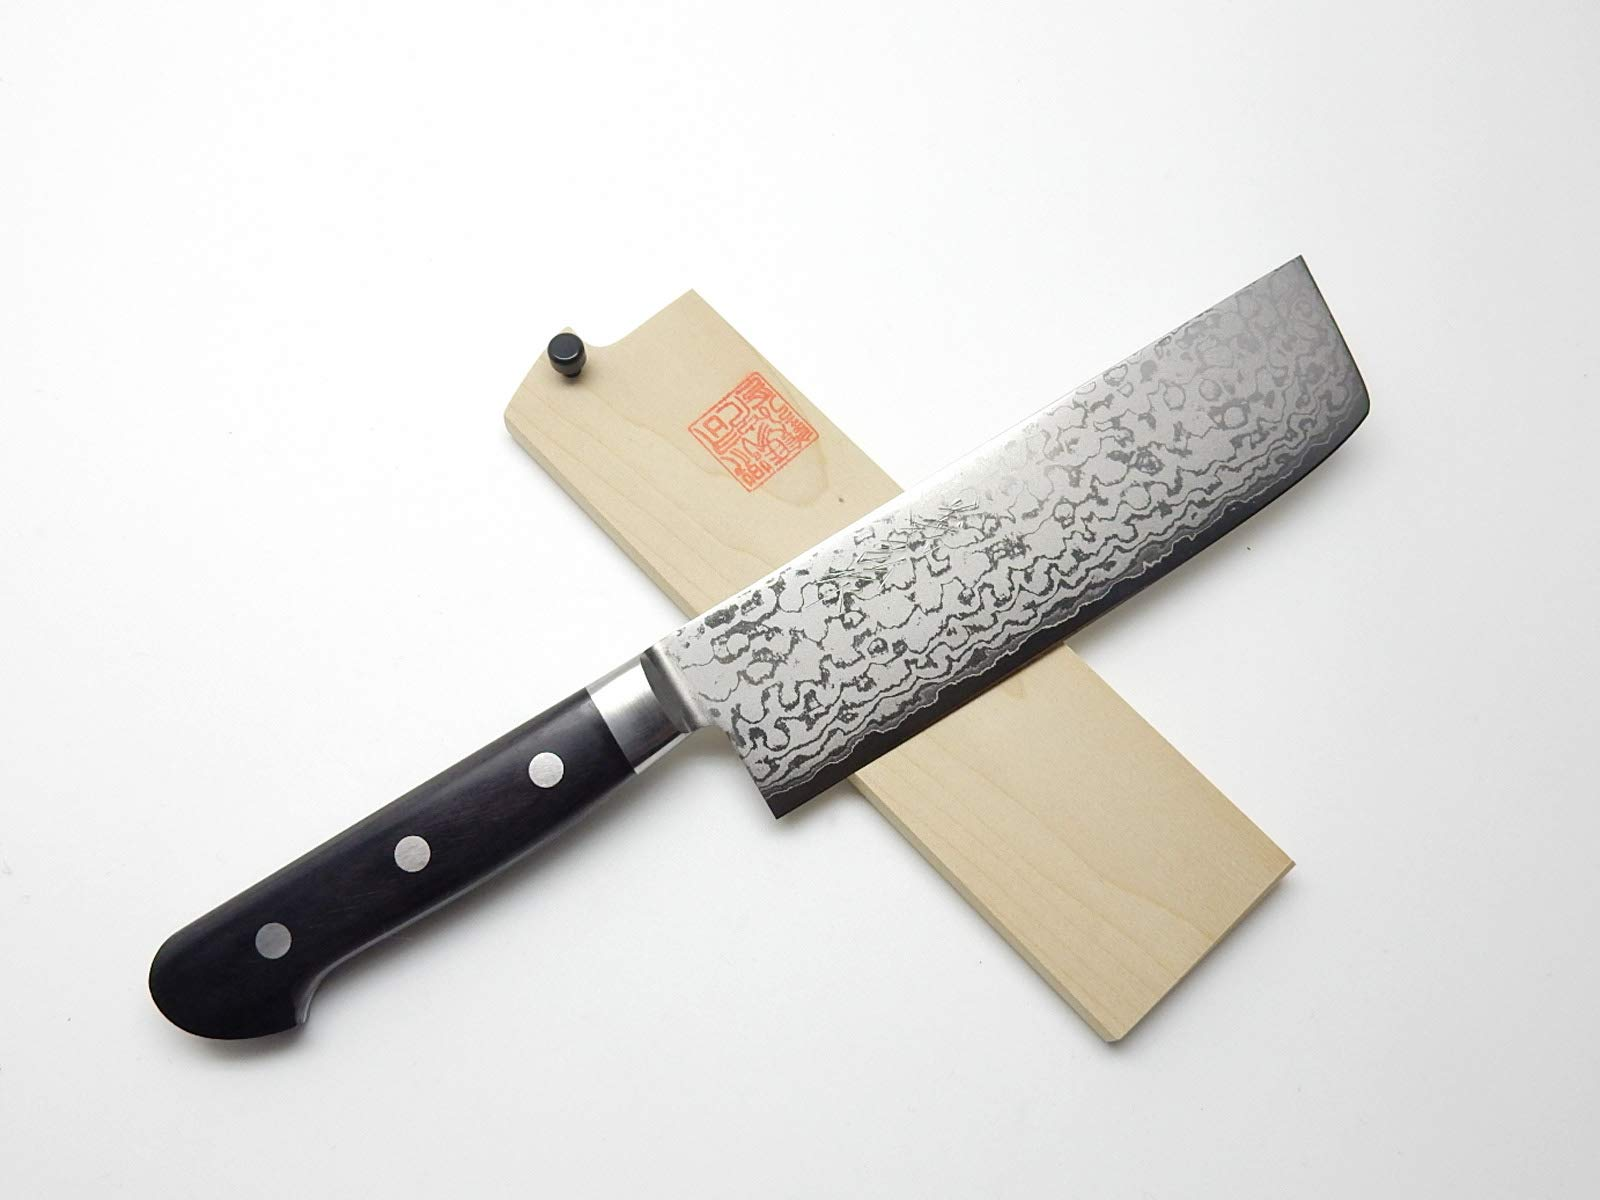 Yoshihiro VG-10 Gold Damascus, HRB Japanese Chef's Usuba(Vegetable) Knife 160mm/6.3'', with Wooden Saya Cover & Saya Pin